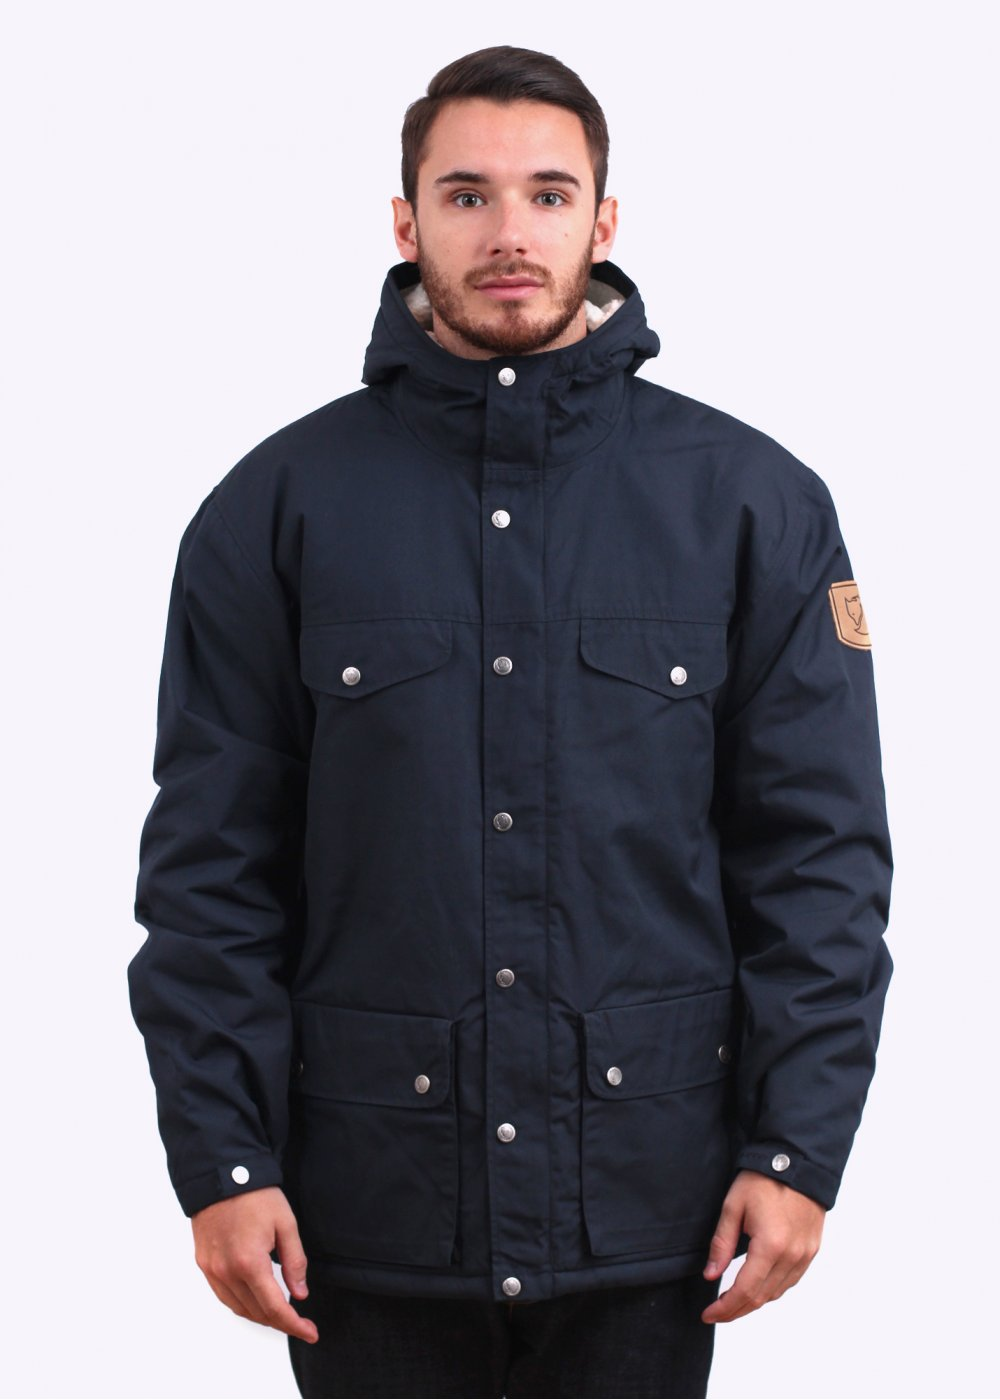 ed696076 Fjallraven Greenland Winter Jacket - Dark Navy